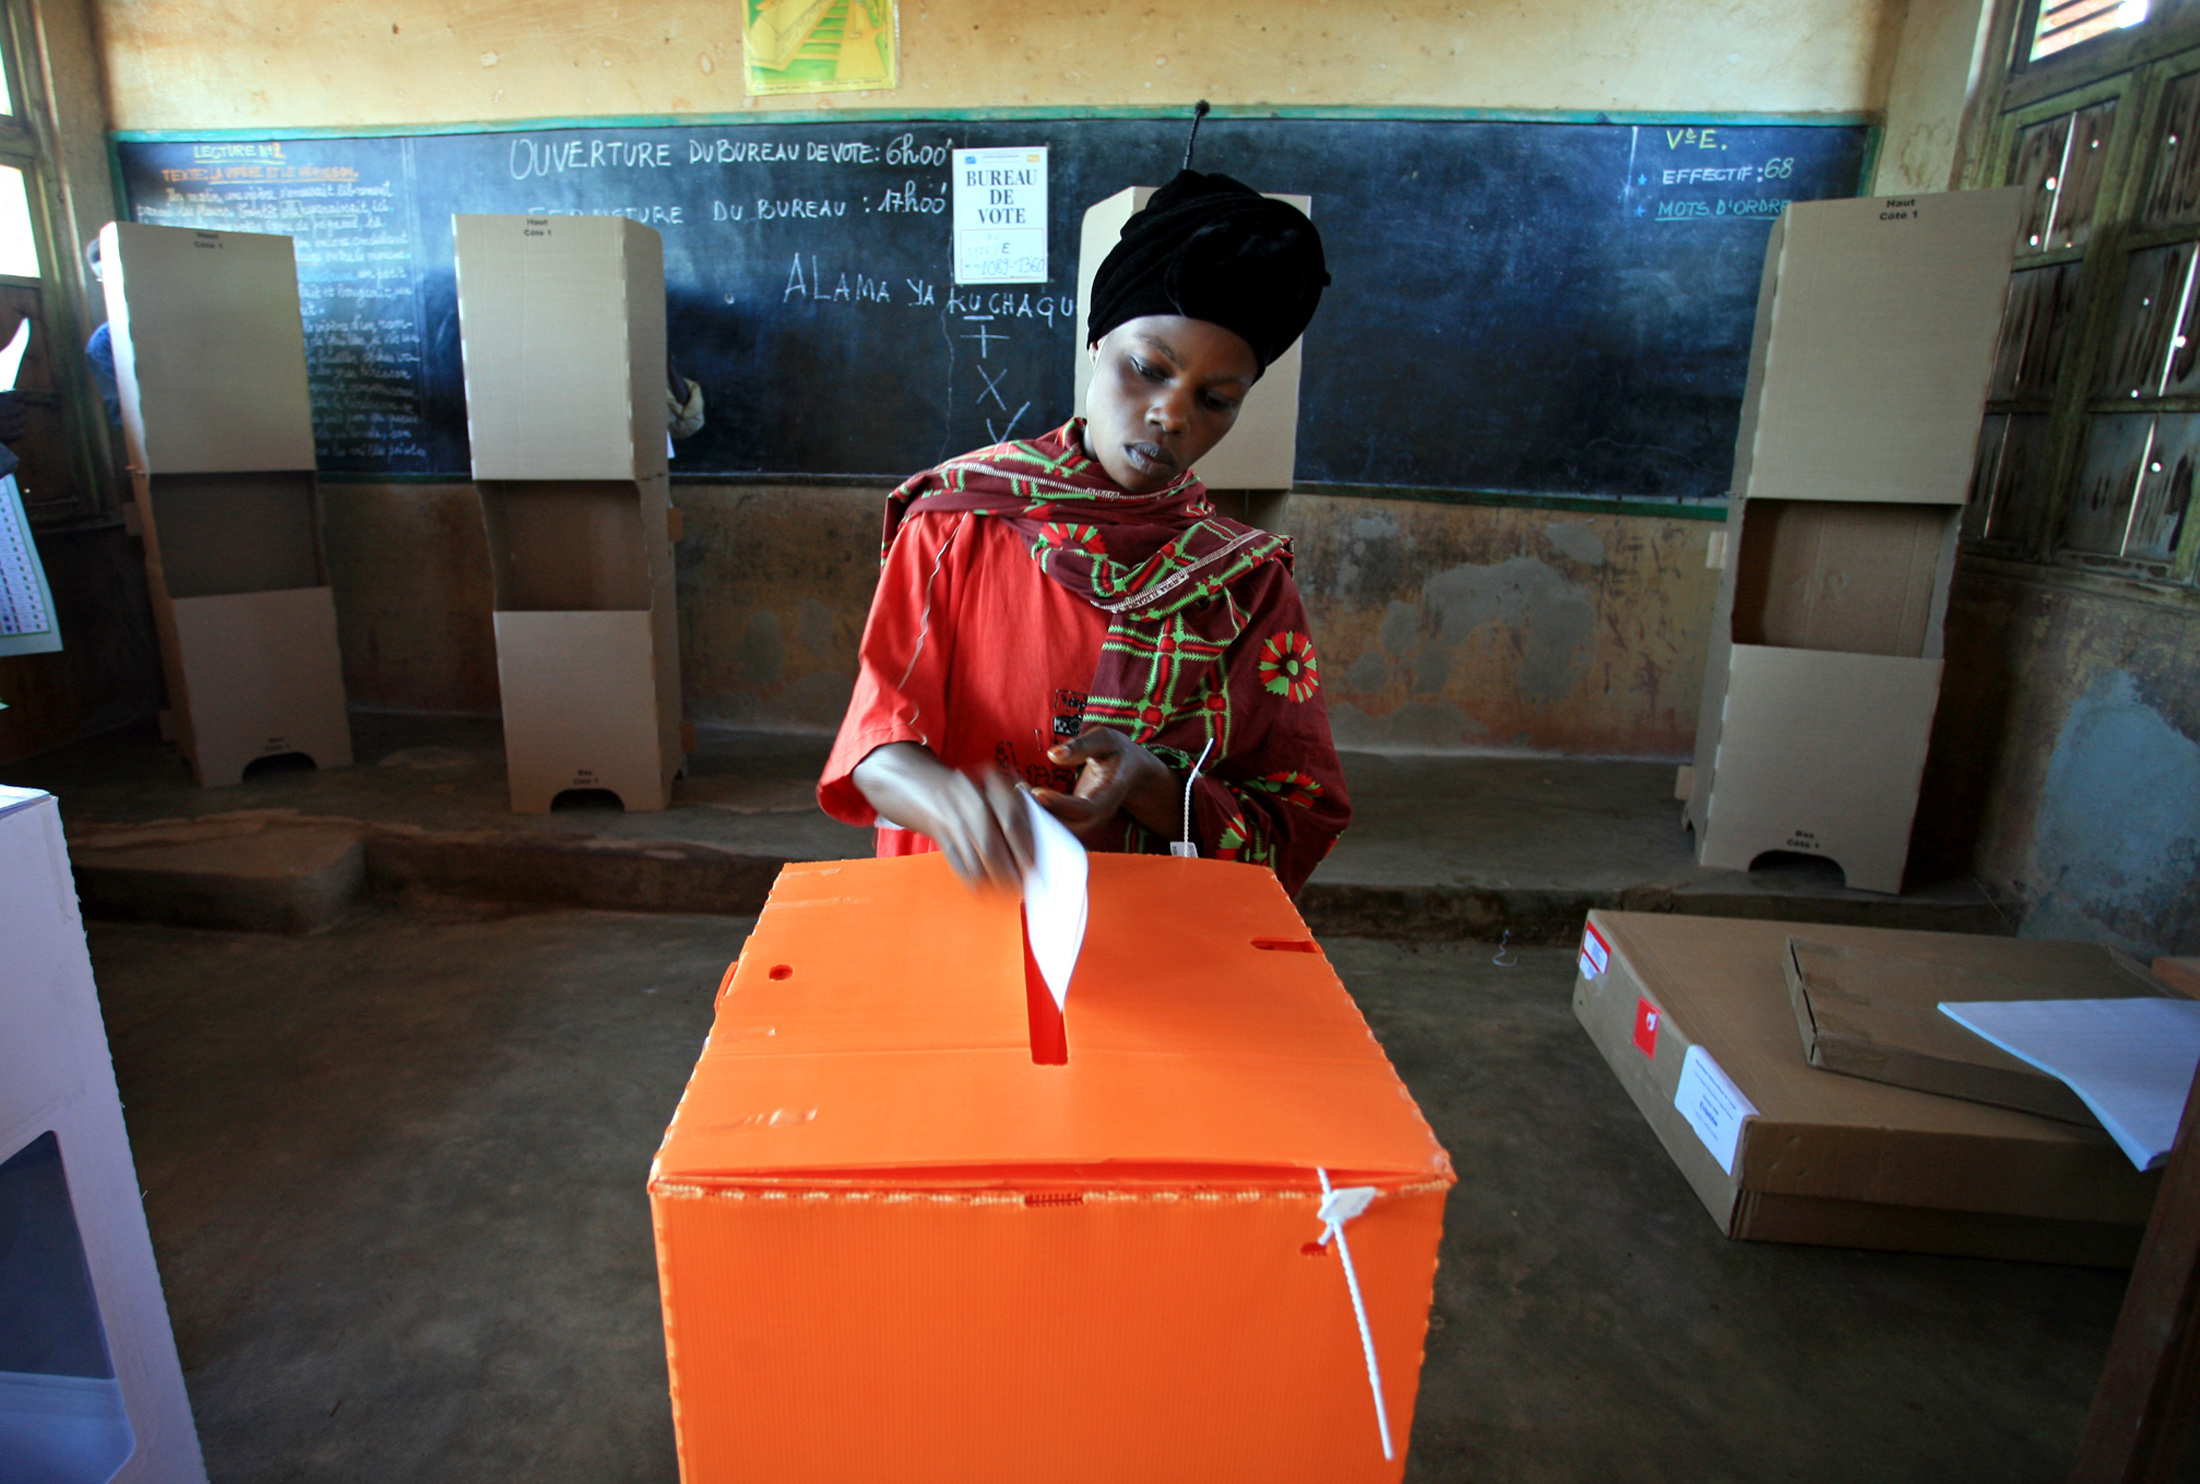 A woman casts her ballot at Nyakasanza primary school polling station, in the eastern Democratic Republic of Congo town of Bunia October 29, 2006. Congo voted on Sunday in a presidential election run-off intended to end decades of war, pillage and kleptocracy that have left the huge country devastated and poor despite vast mineral riches. REUTERS/James Akena   (DEMOCRATIC REPUBLIC OF CONGO) - RTR1ISPC